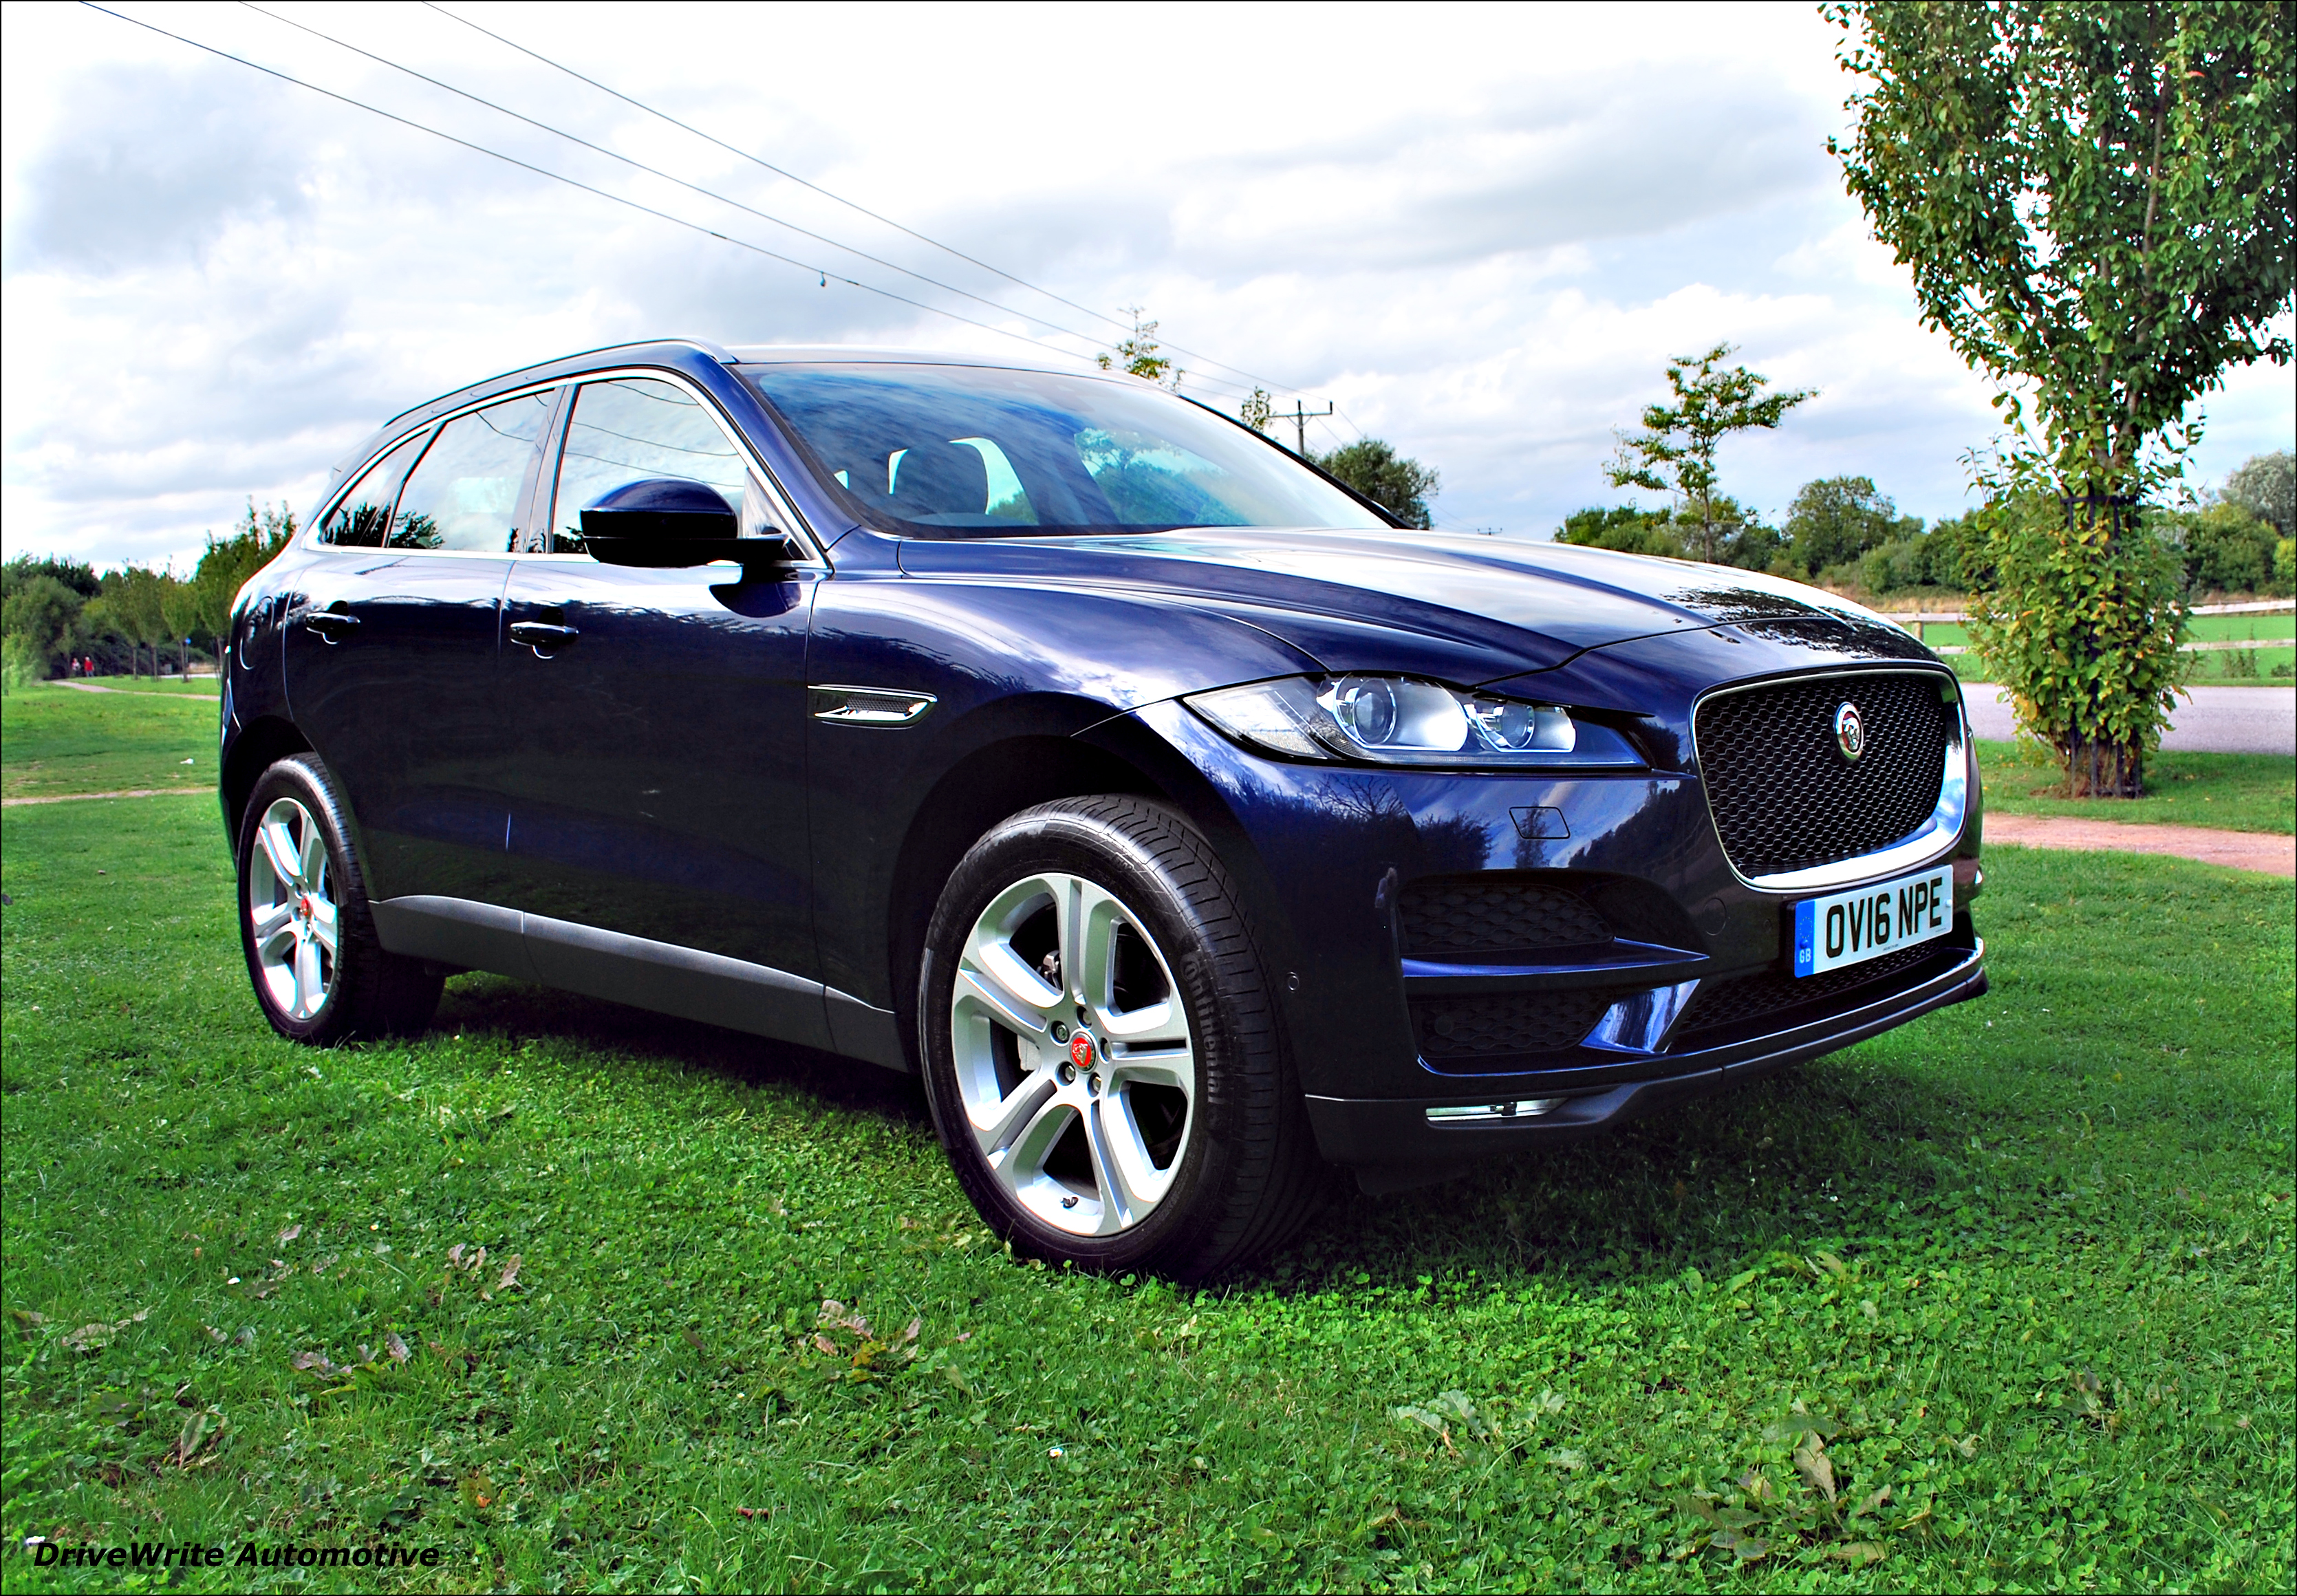 jaguar f pace ahead of the suv pack the business exchange bath and somerset. Black Bedroom Furniture Sets. Home Design Ideas